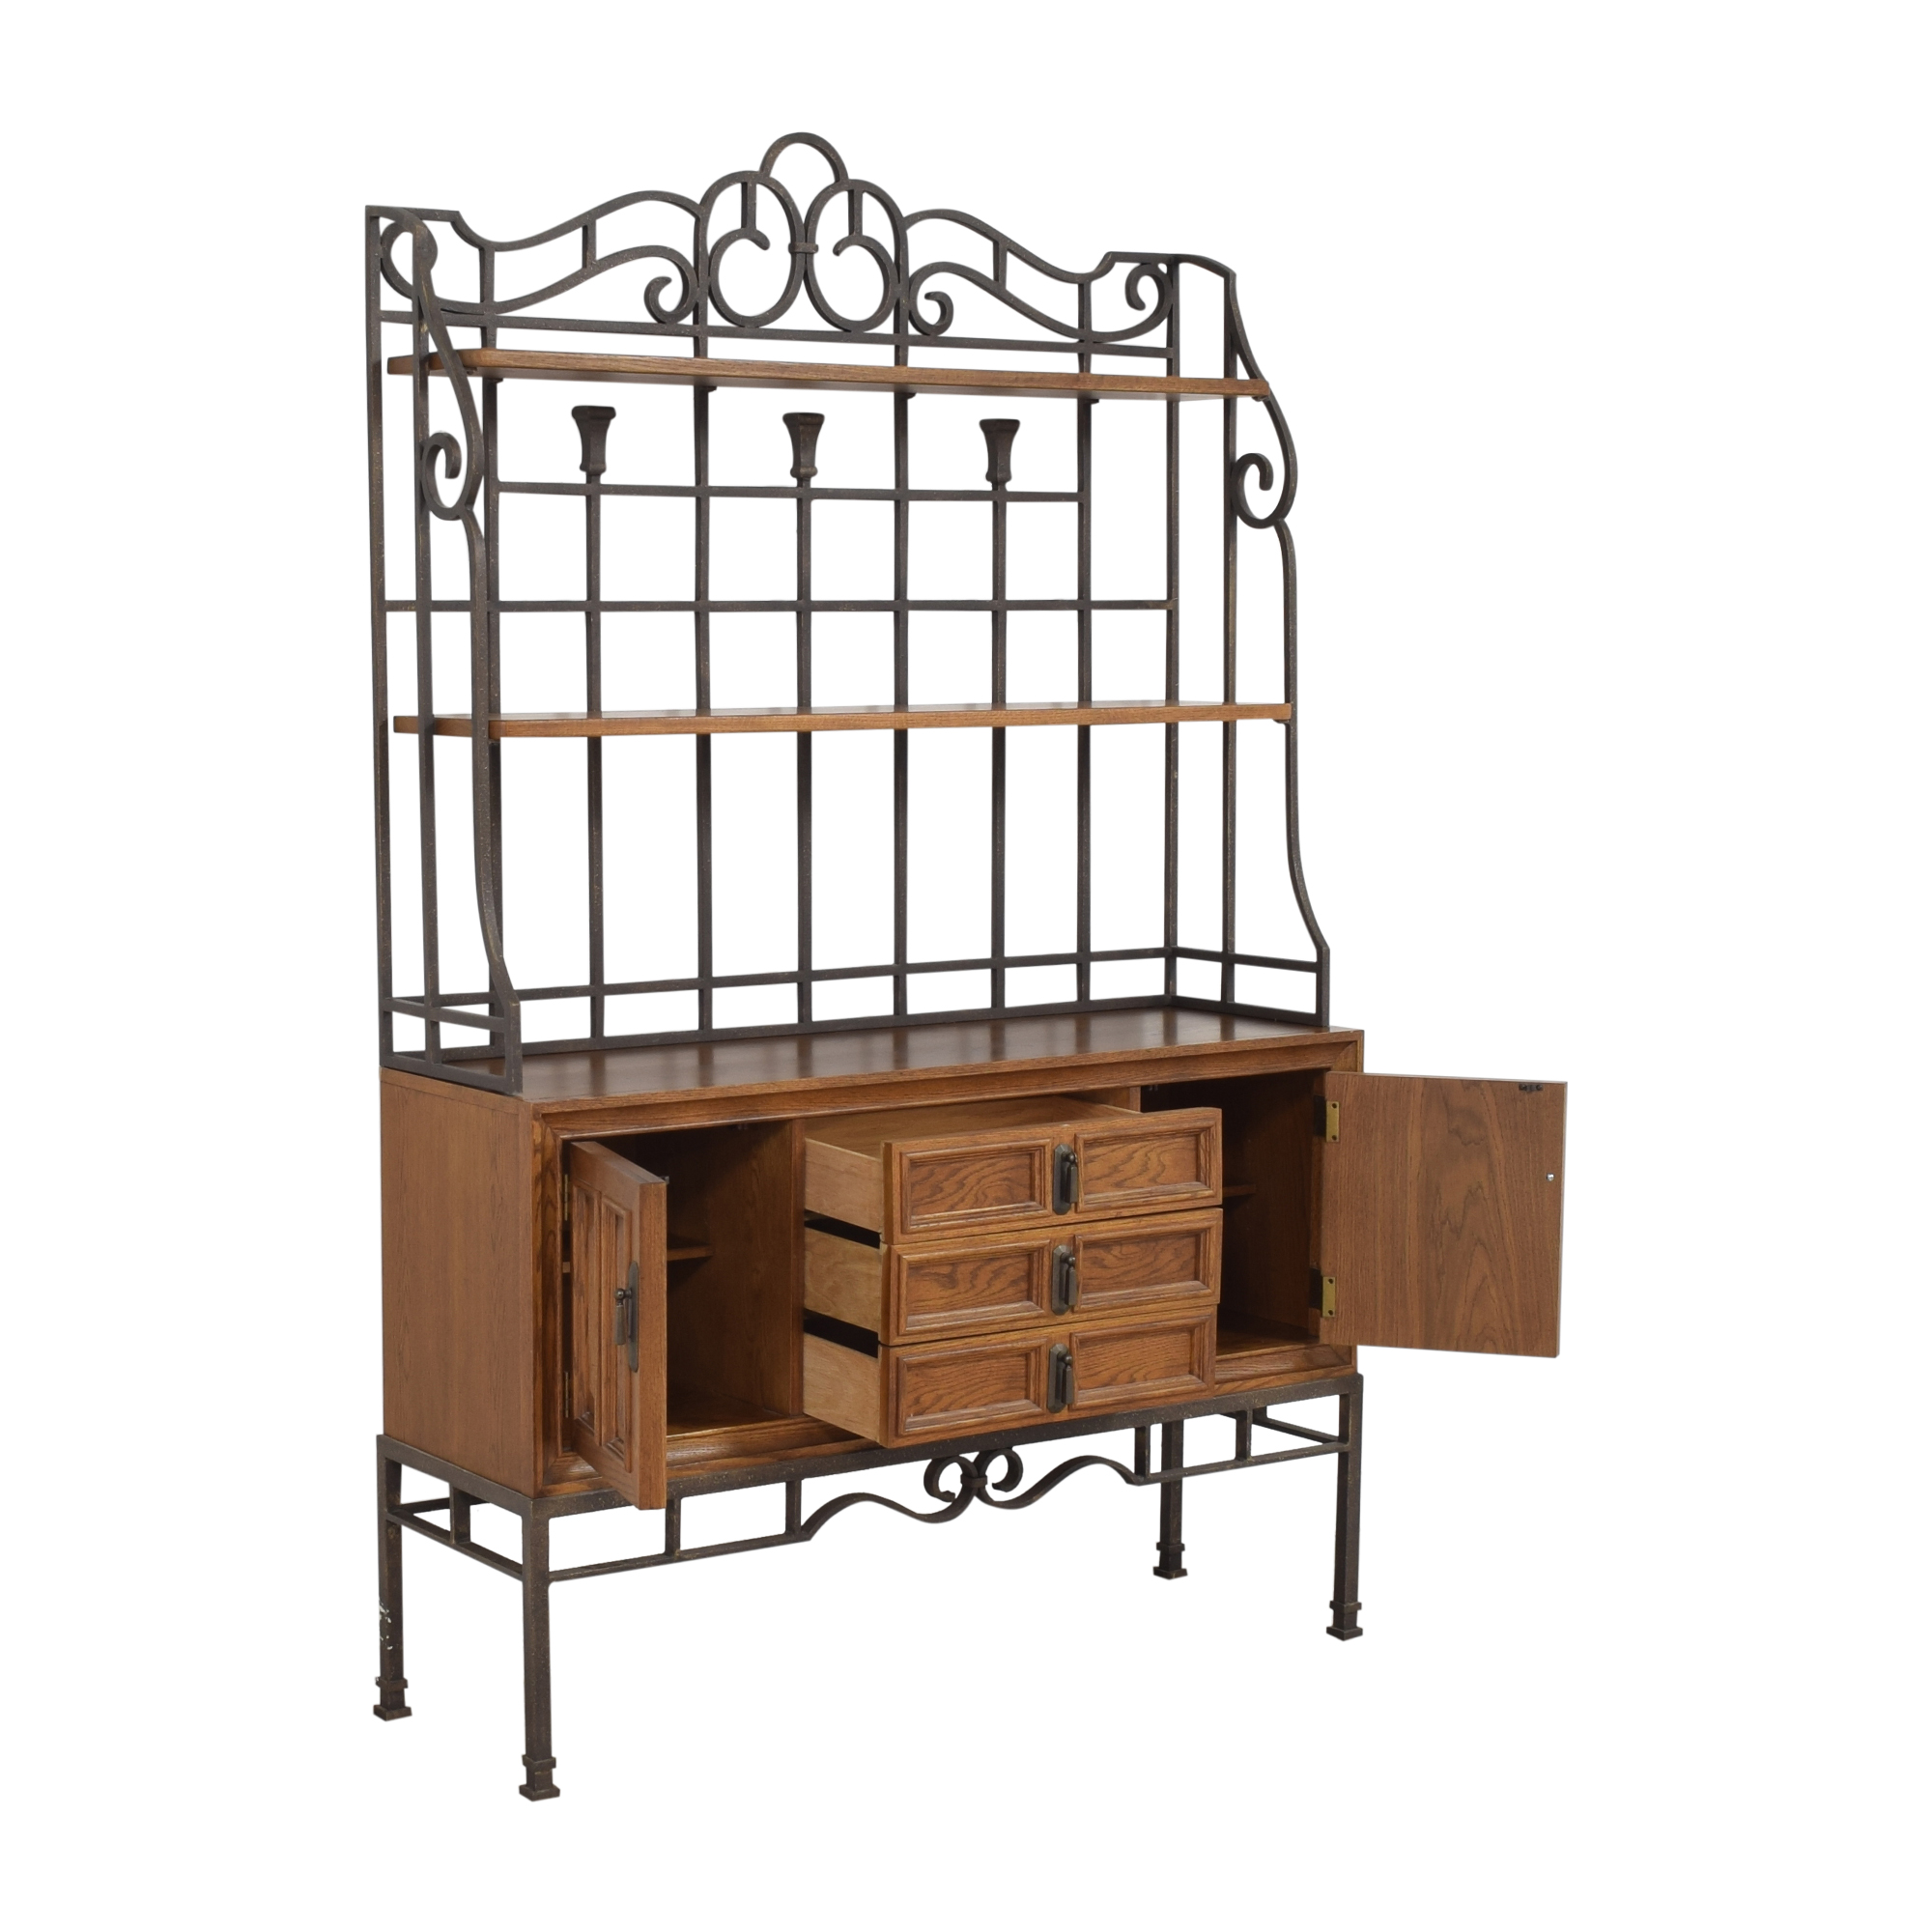 Stanley Furniture Stanley Furniture Server with Hutch ma